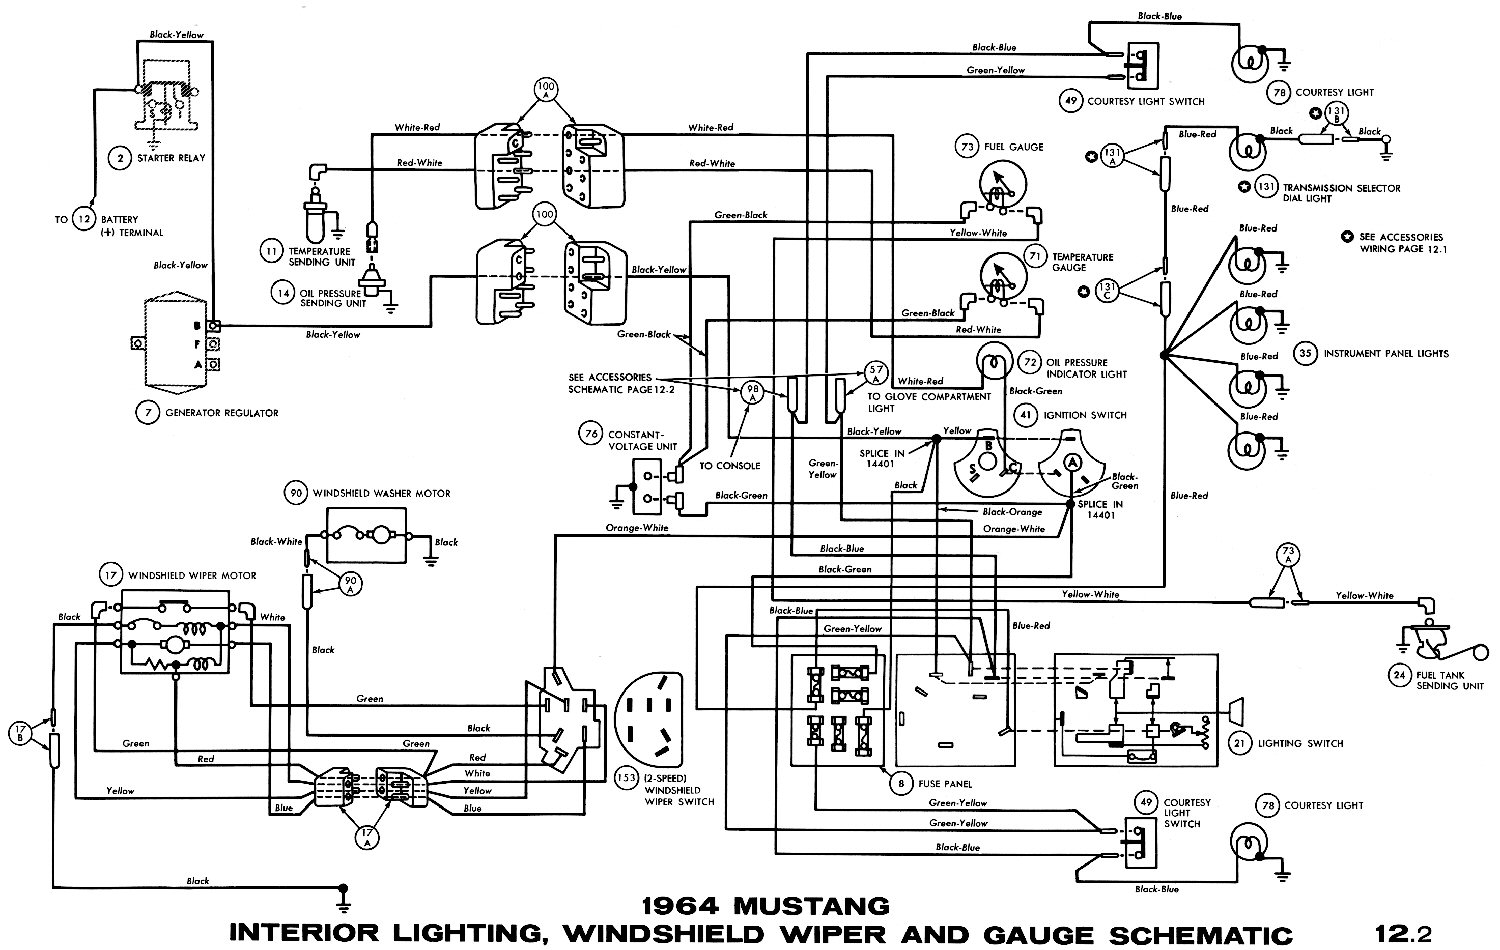 1964 Mustang Wiring Diagrams Schematic | Wiring Diagrams